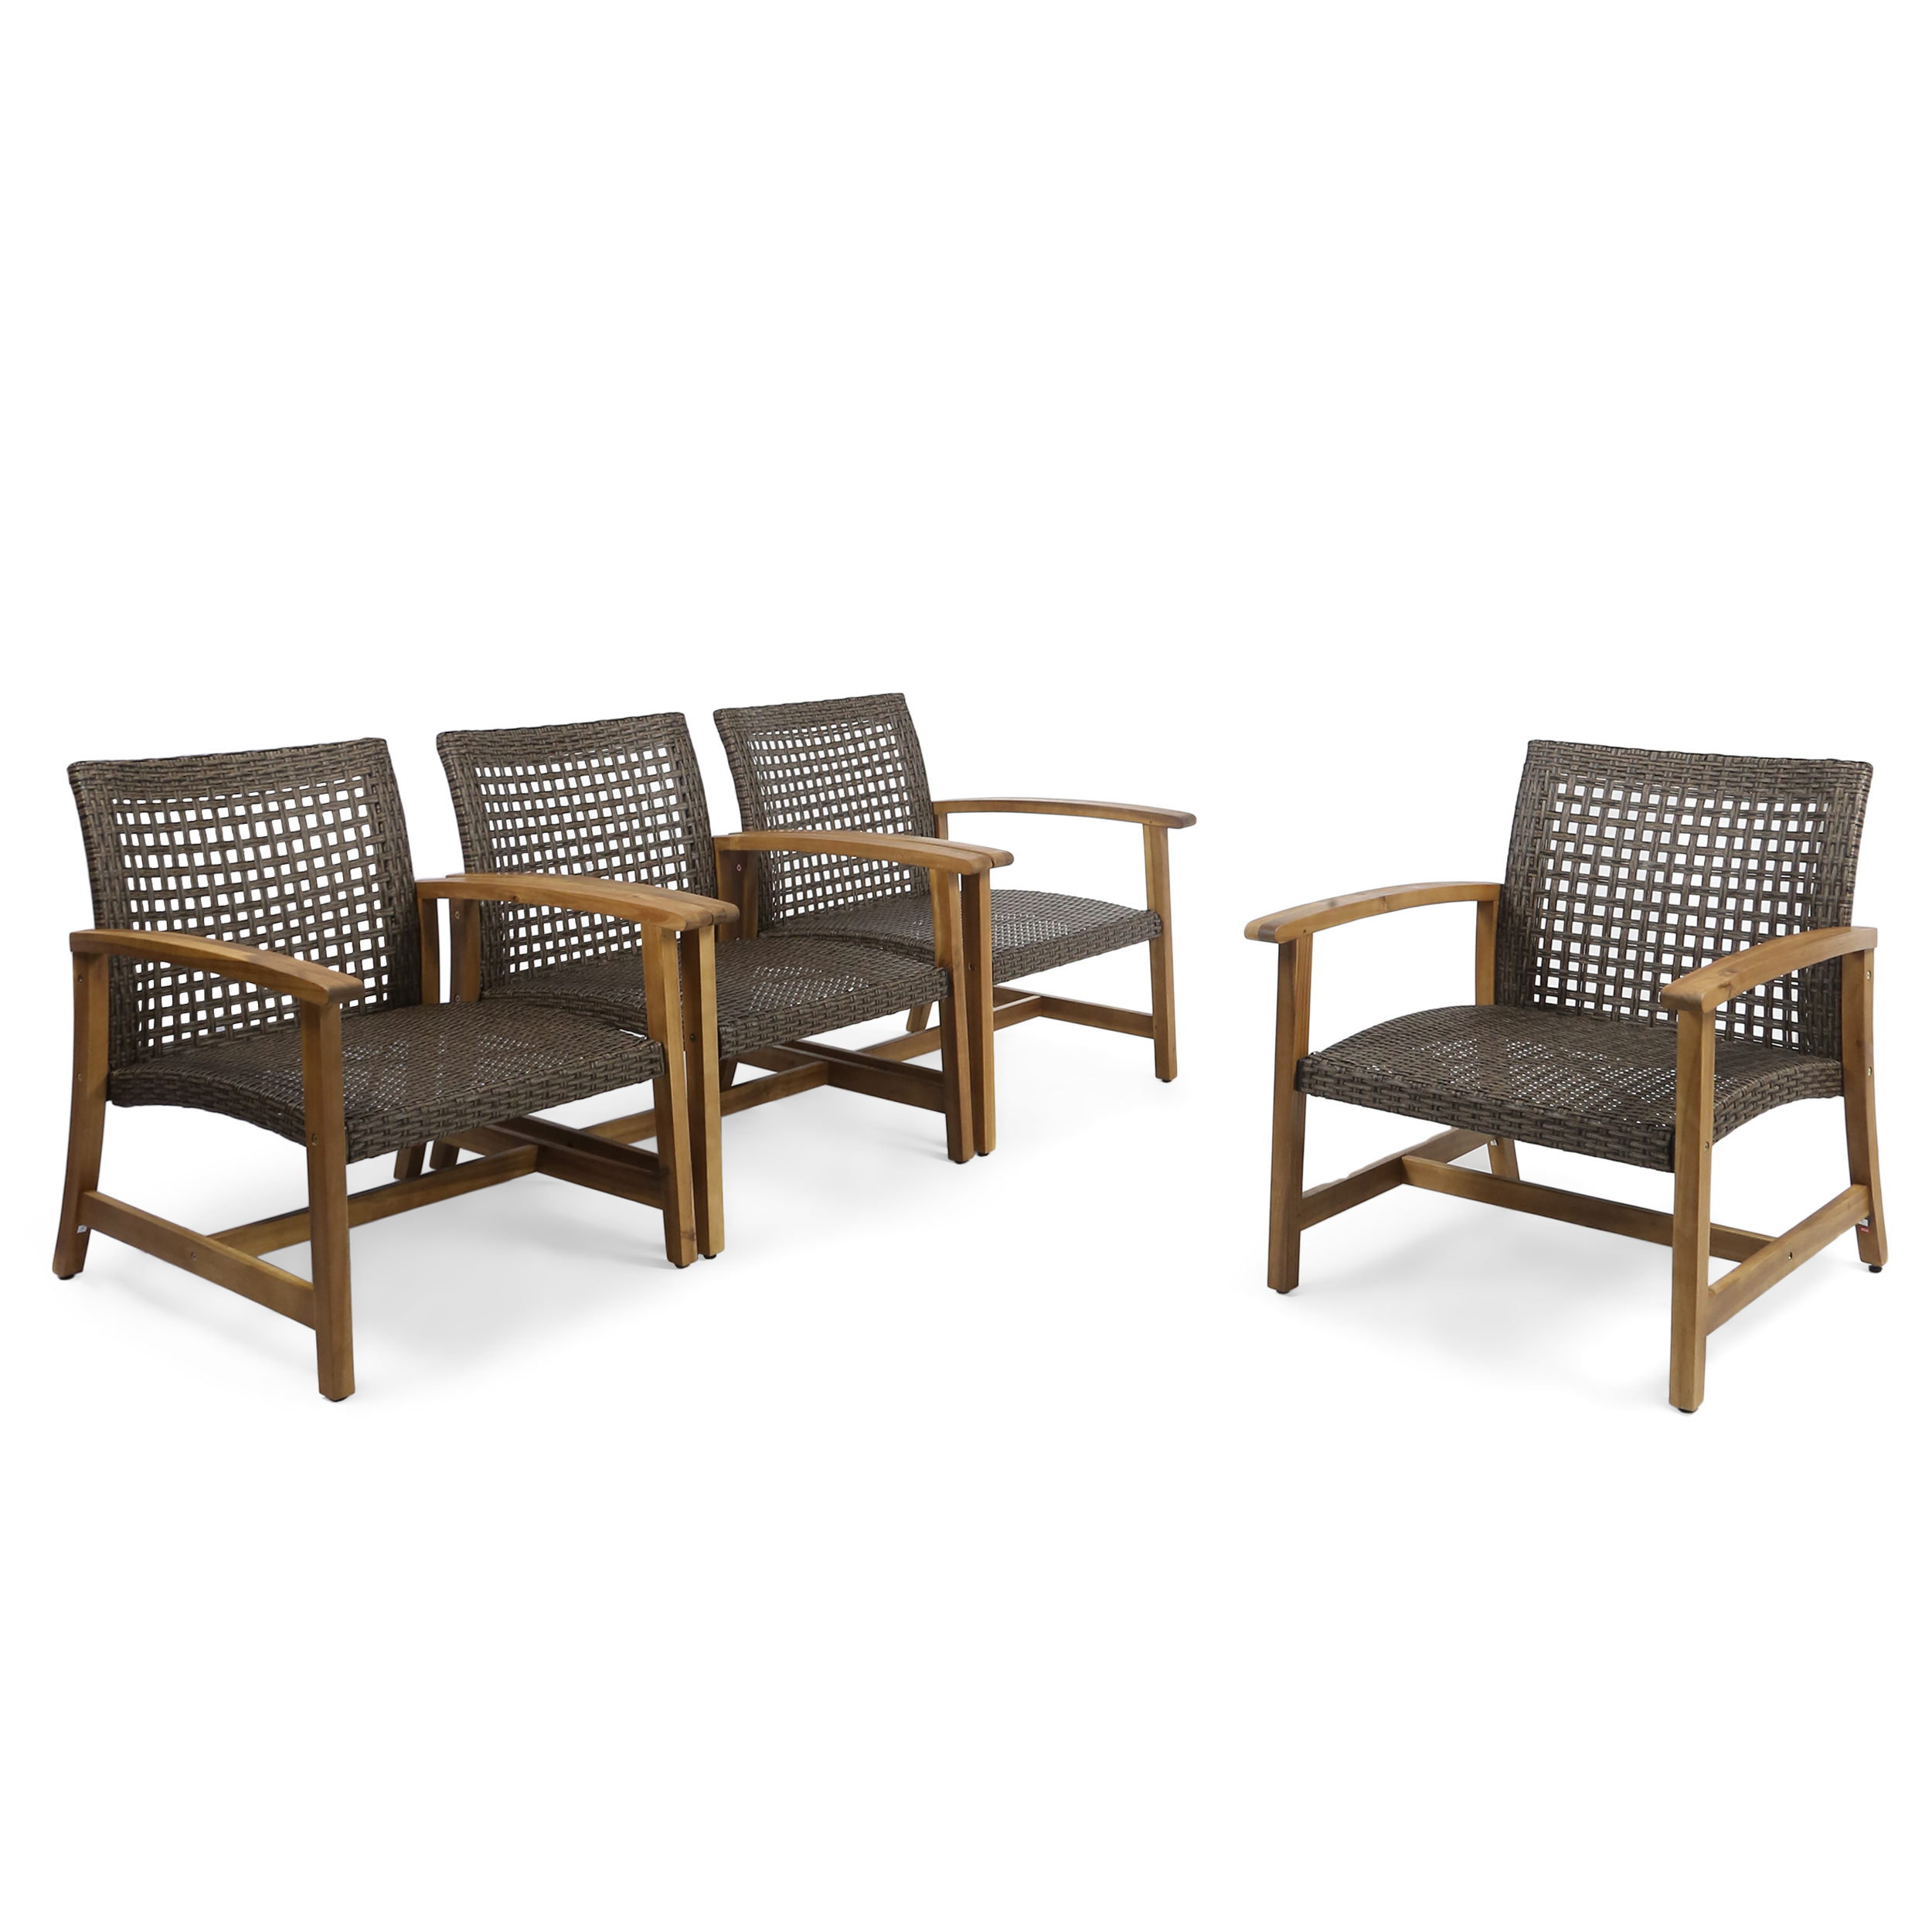 Set Of 4 Brown And Black Hand Crafted Outdoor Patio Club Chairs 32 75 Walmart Com Walmart Com